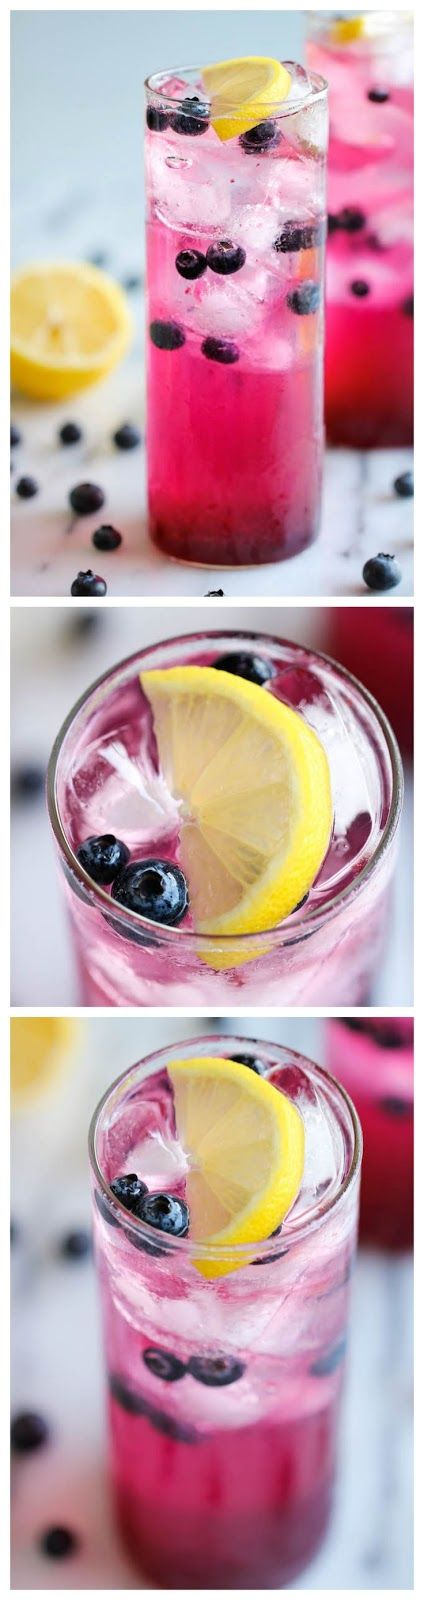 Try This Amazingly Delicious Blueberry Lemonade At Home